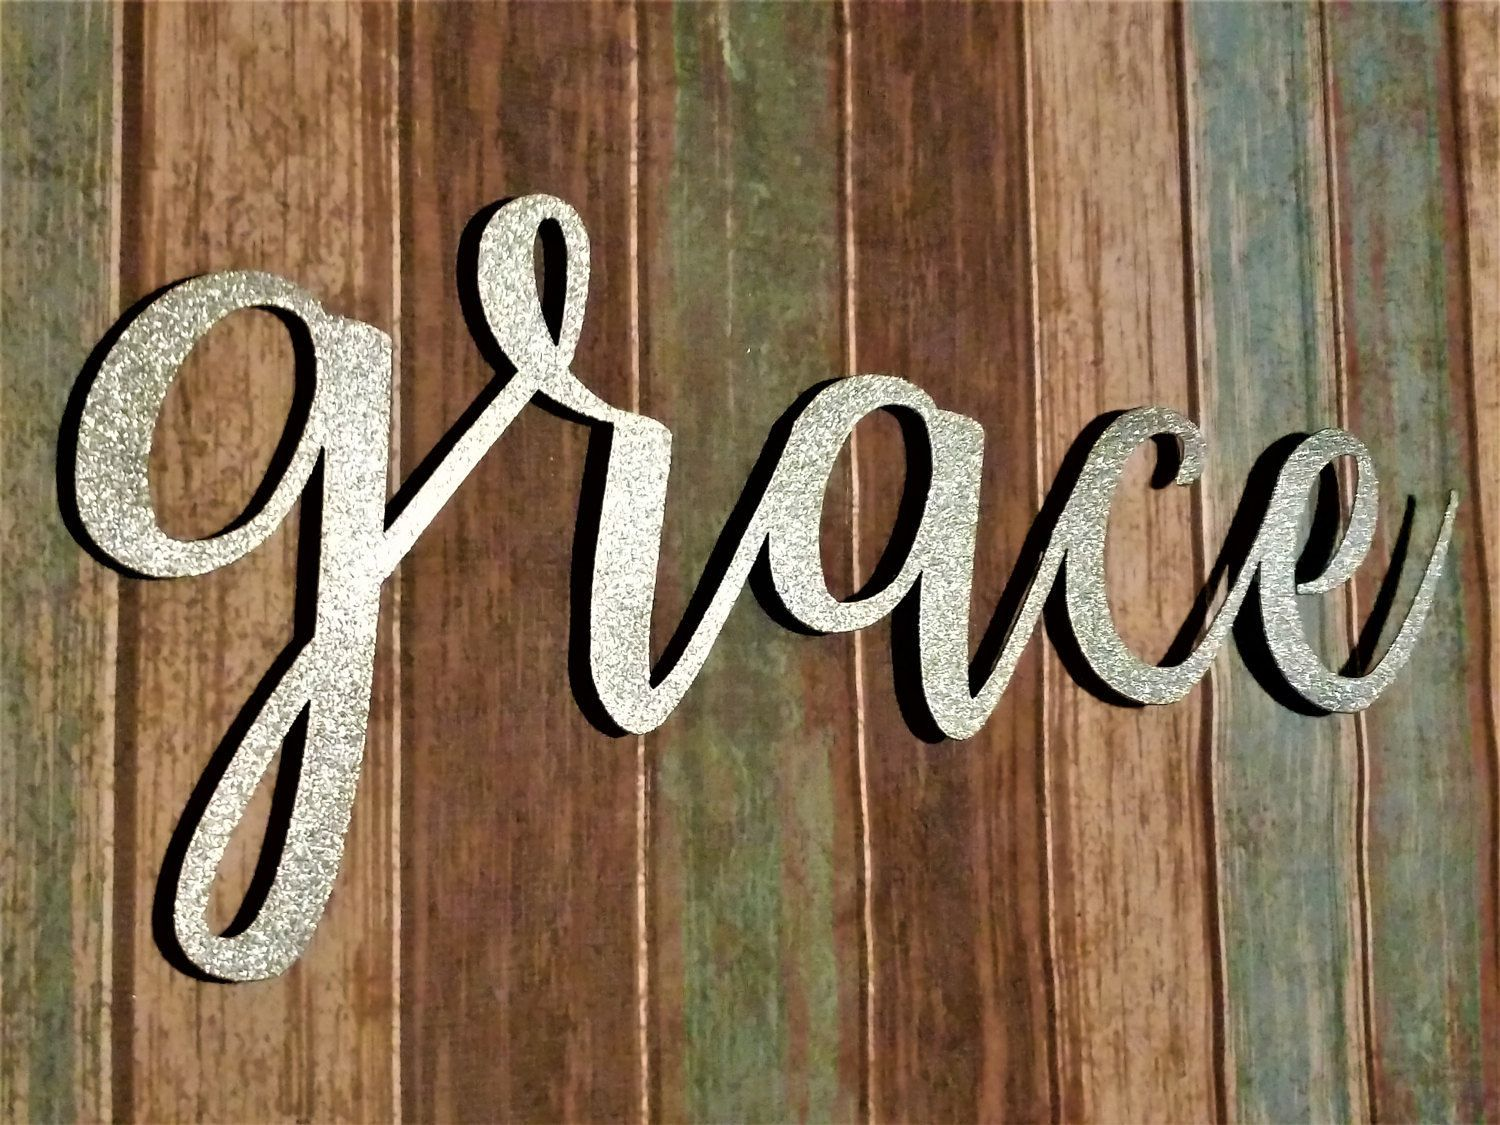 Wood Word Wall Art grace sign, farmhouse decor, grace wall art, rustic signs, grace